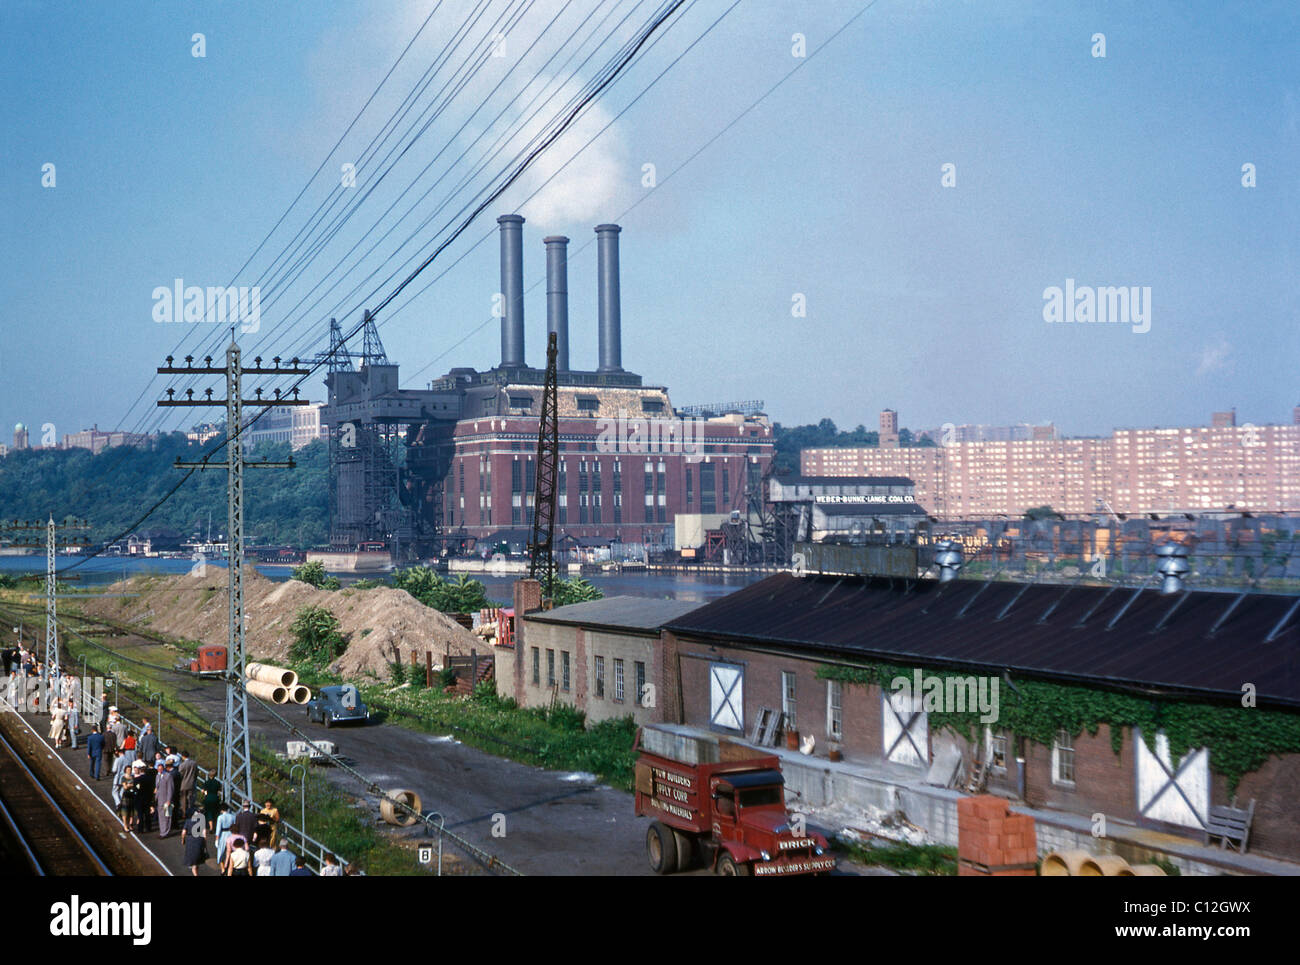 Industrial New York, August 1953 - view across the Harlem River towards the Con Edison power plant, Inwood - Stock Image